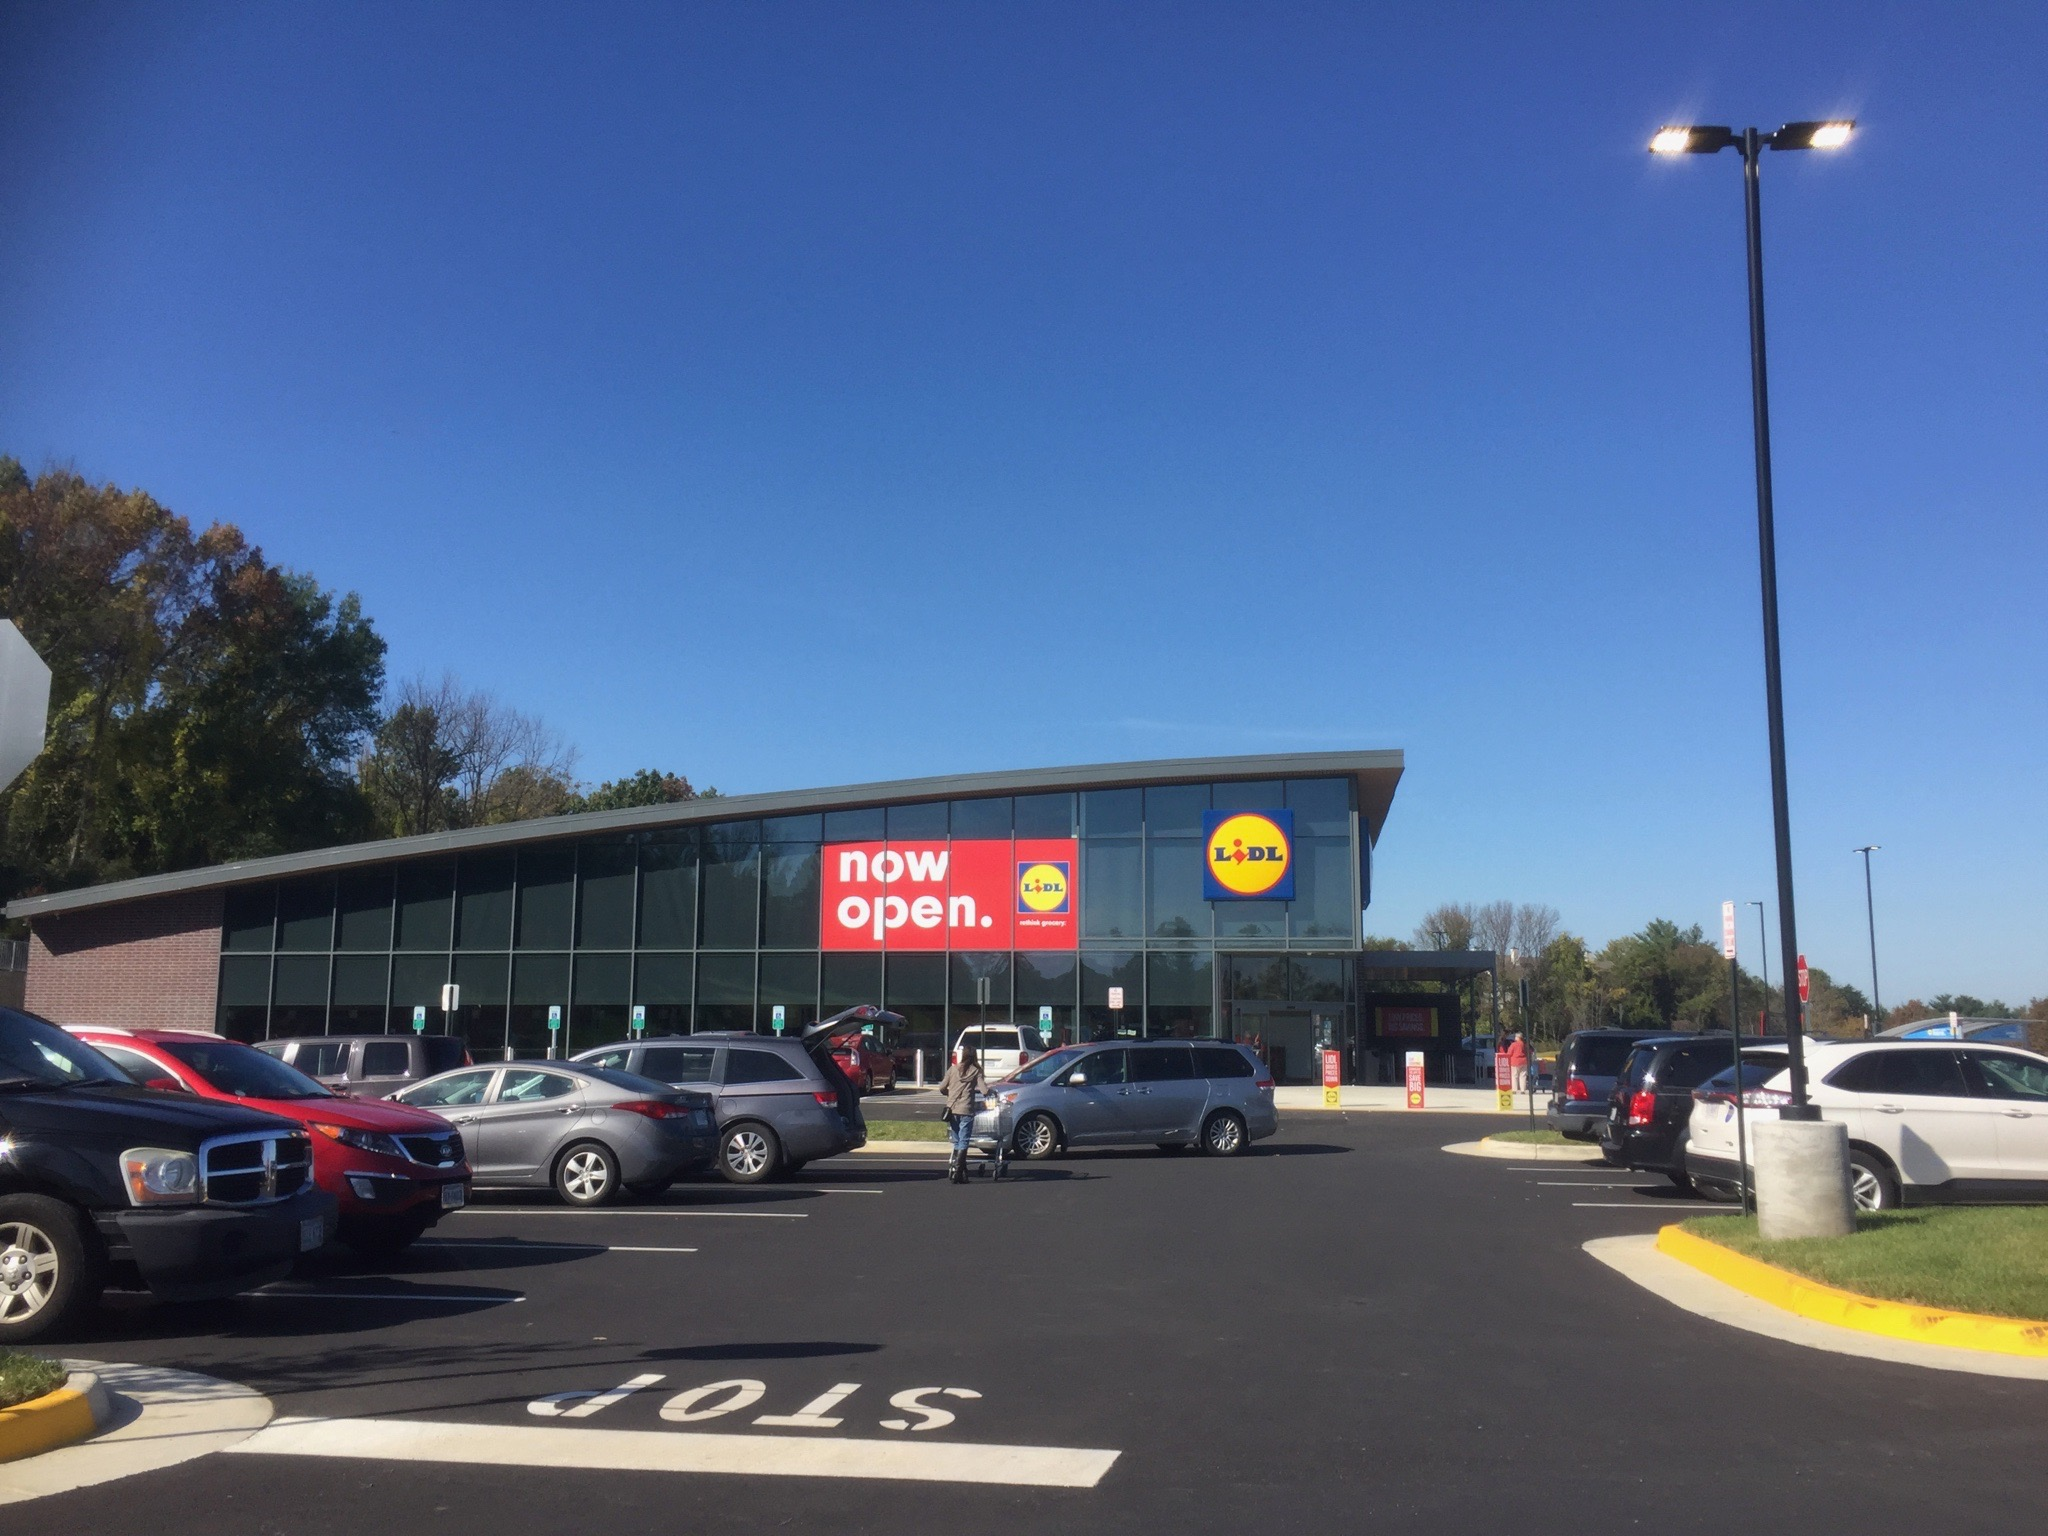 Inside the Lidl store in Manassas, VA